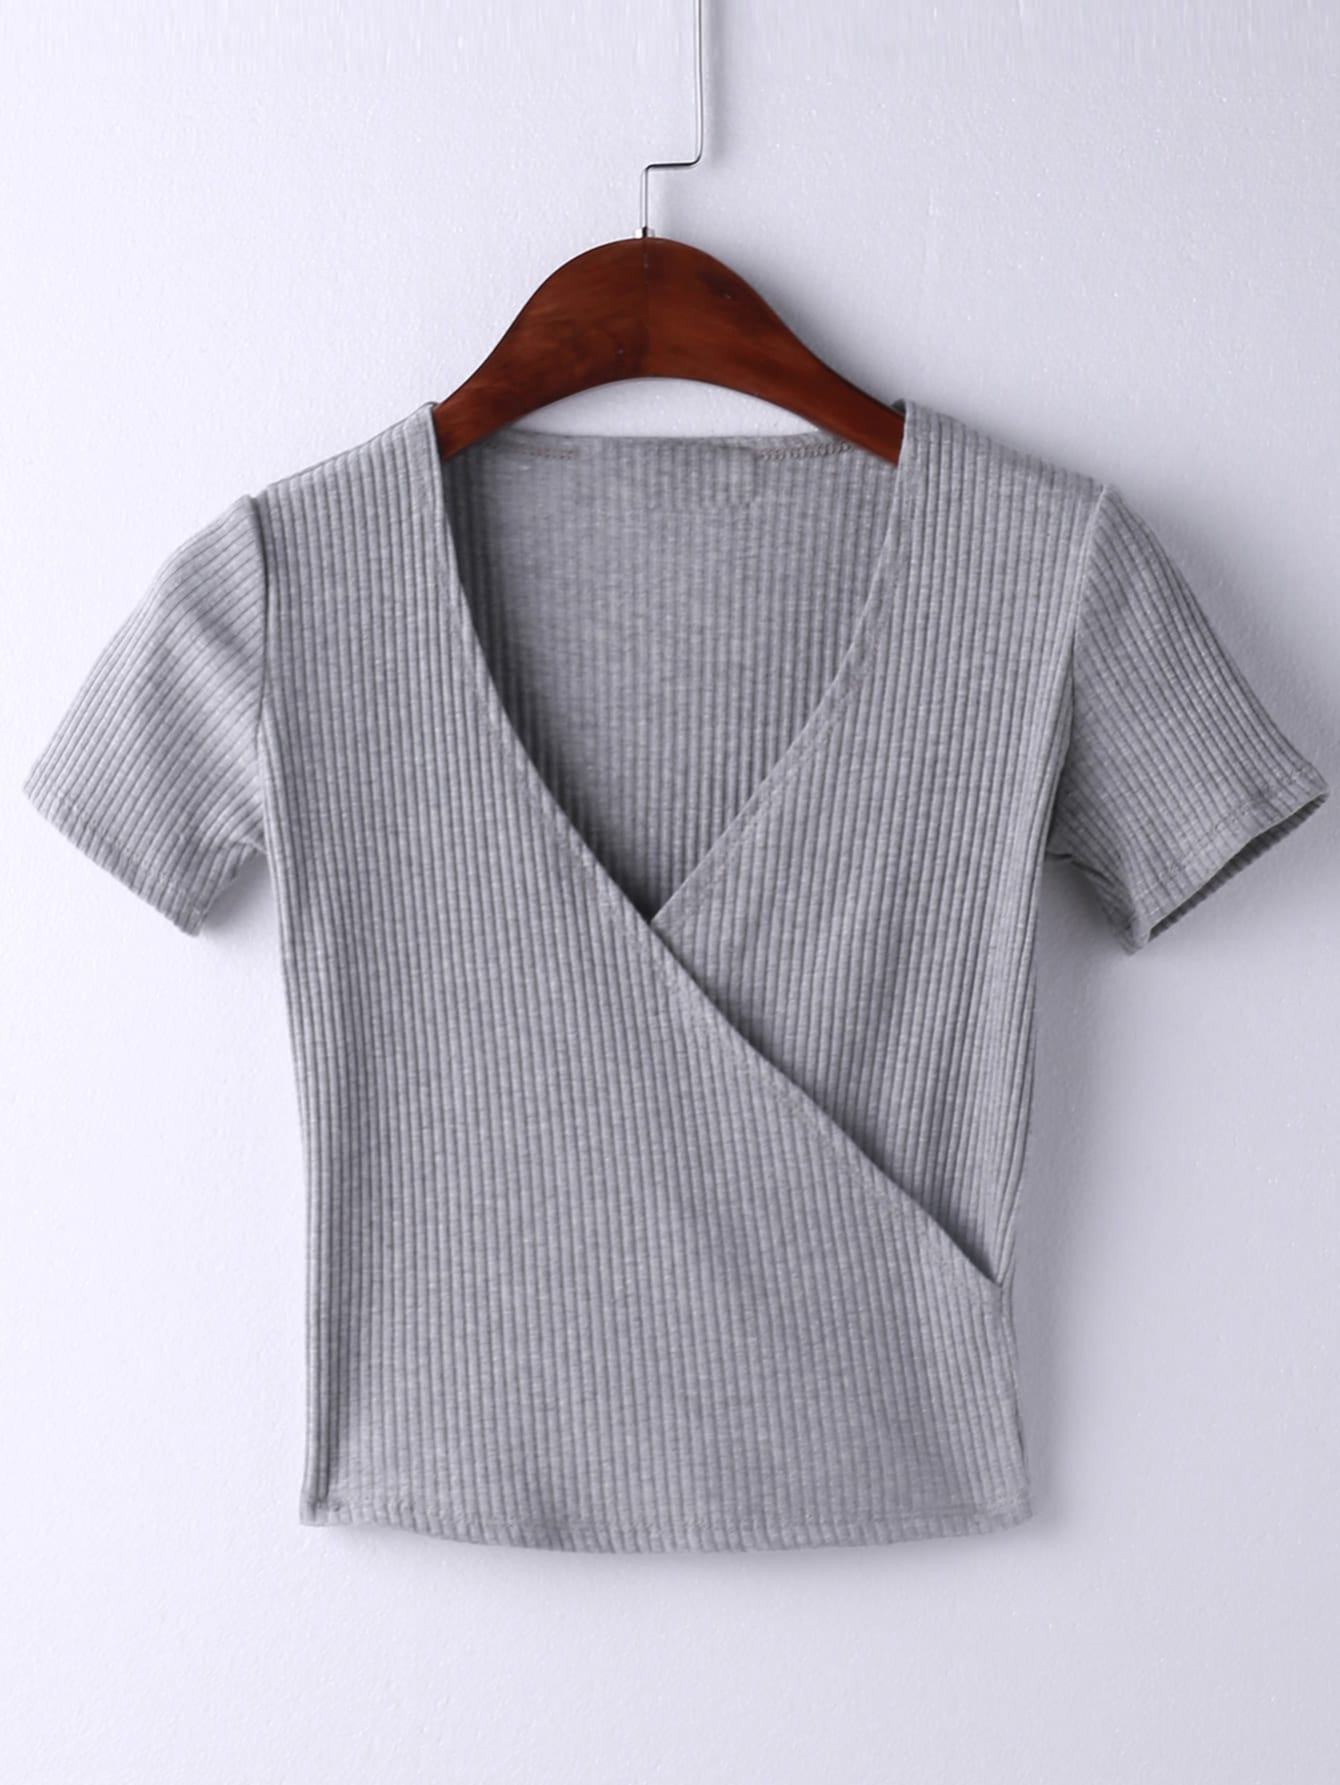 Grey Short Sleeve Cross V Neck T-shirtGrey Short Sleeve Cross V Neck T-shirt<br><br>color: Grey<br>size: M,S